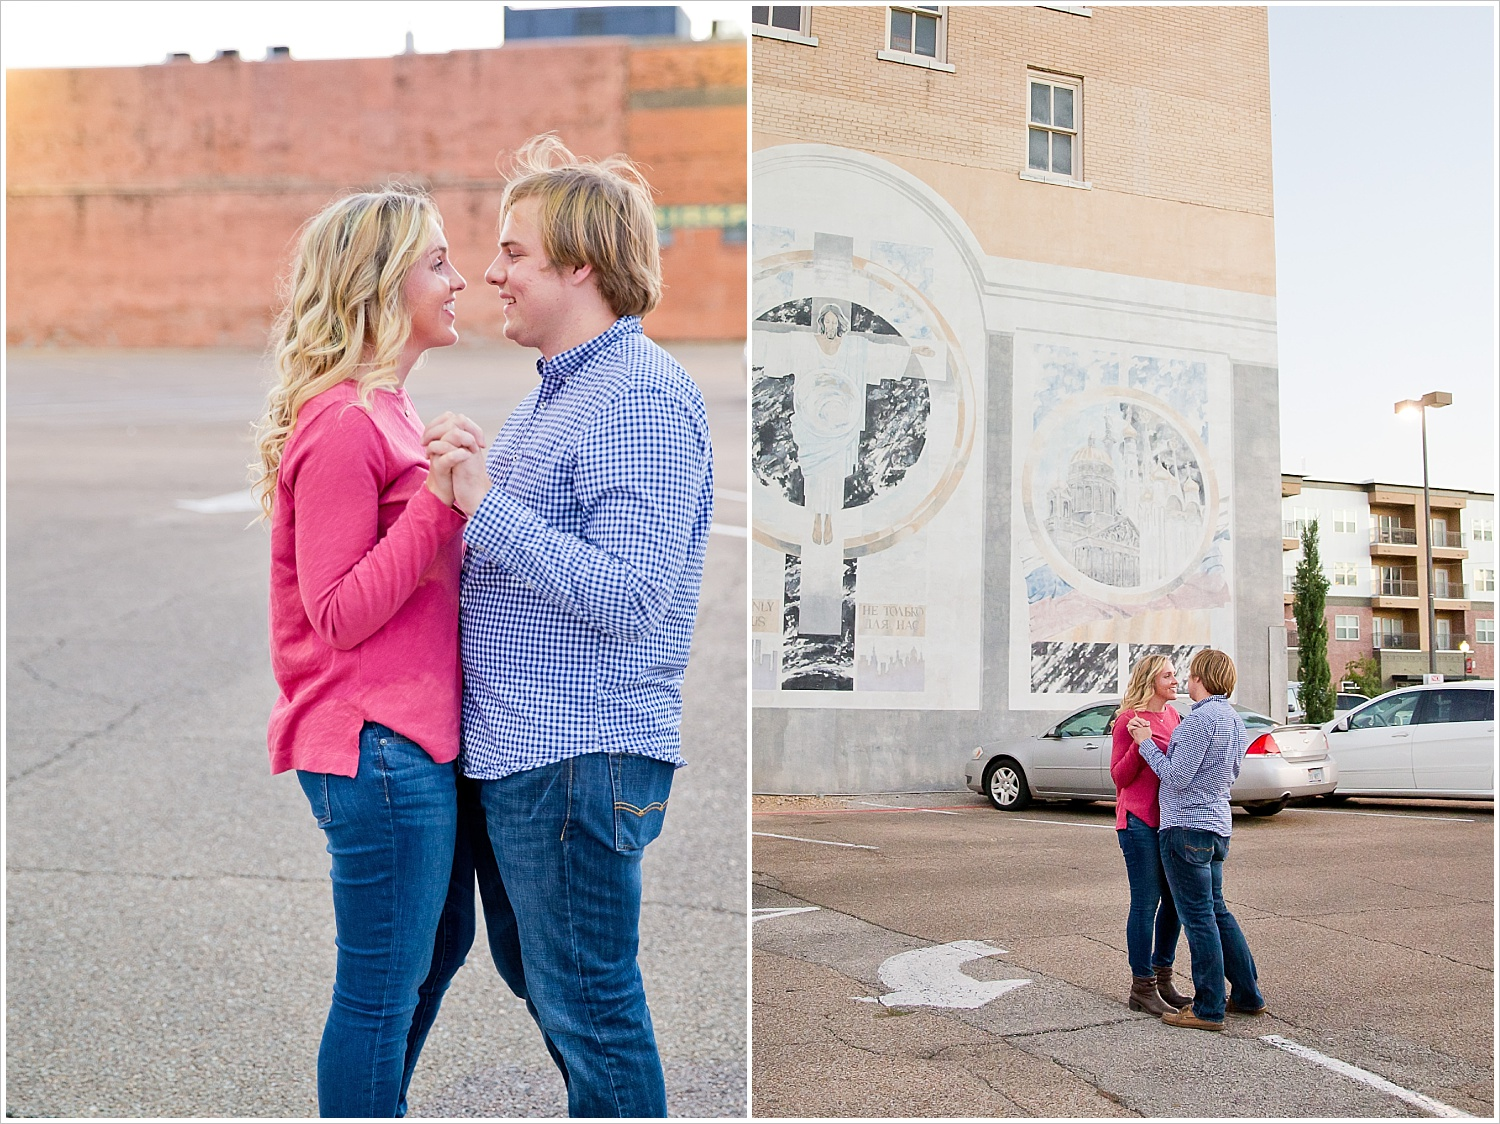 Couple dancing in parking lot downtown | Love Photography in Waco, Texas | Jason & Melaina Photography